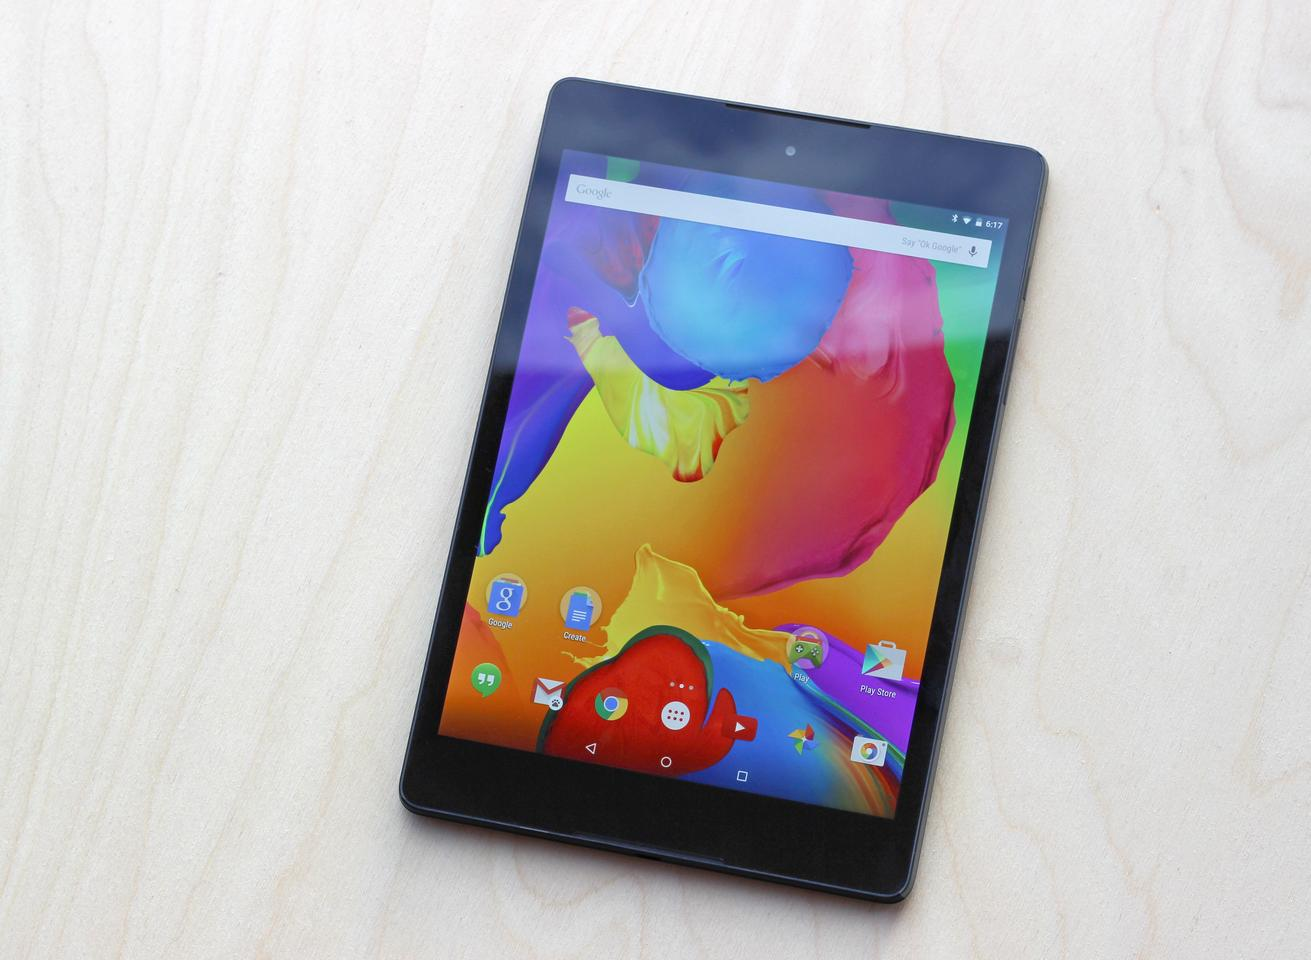 The Nexus 9, with its mid-sized 8.9-in display (Photo: Will Shanklin/Gizmag.com)